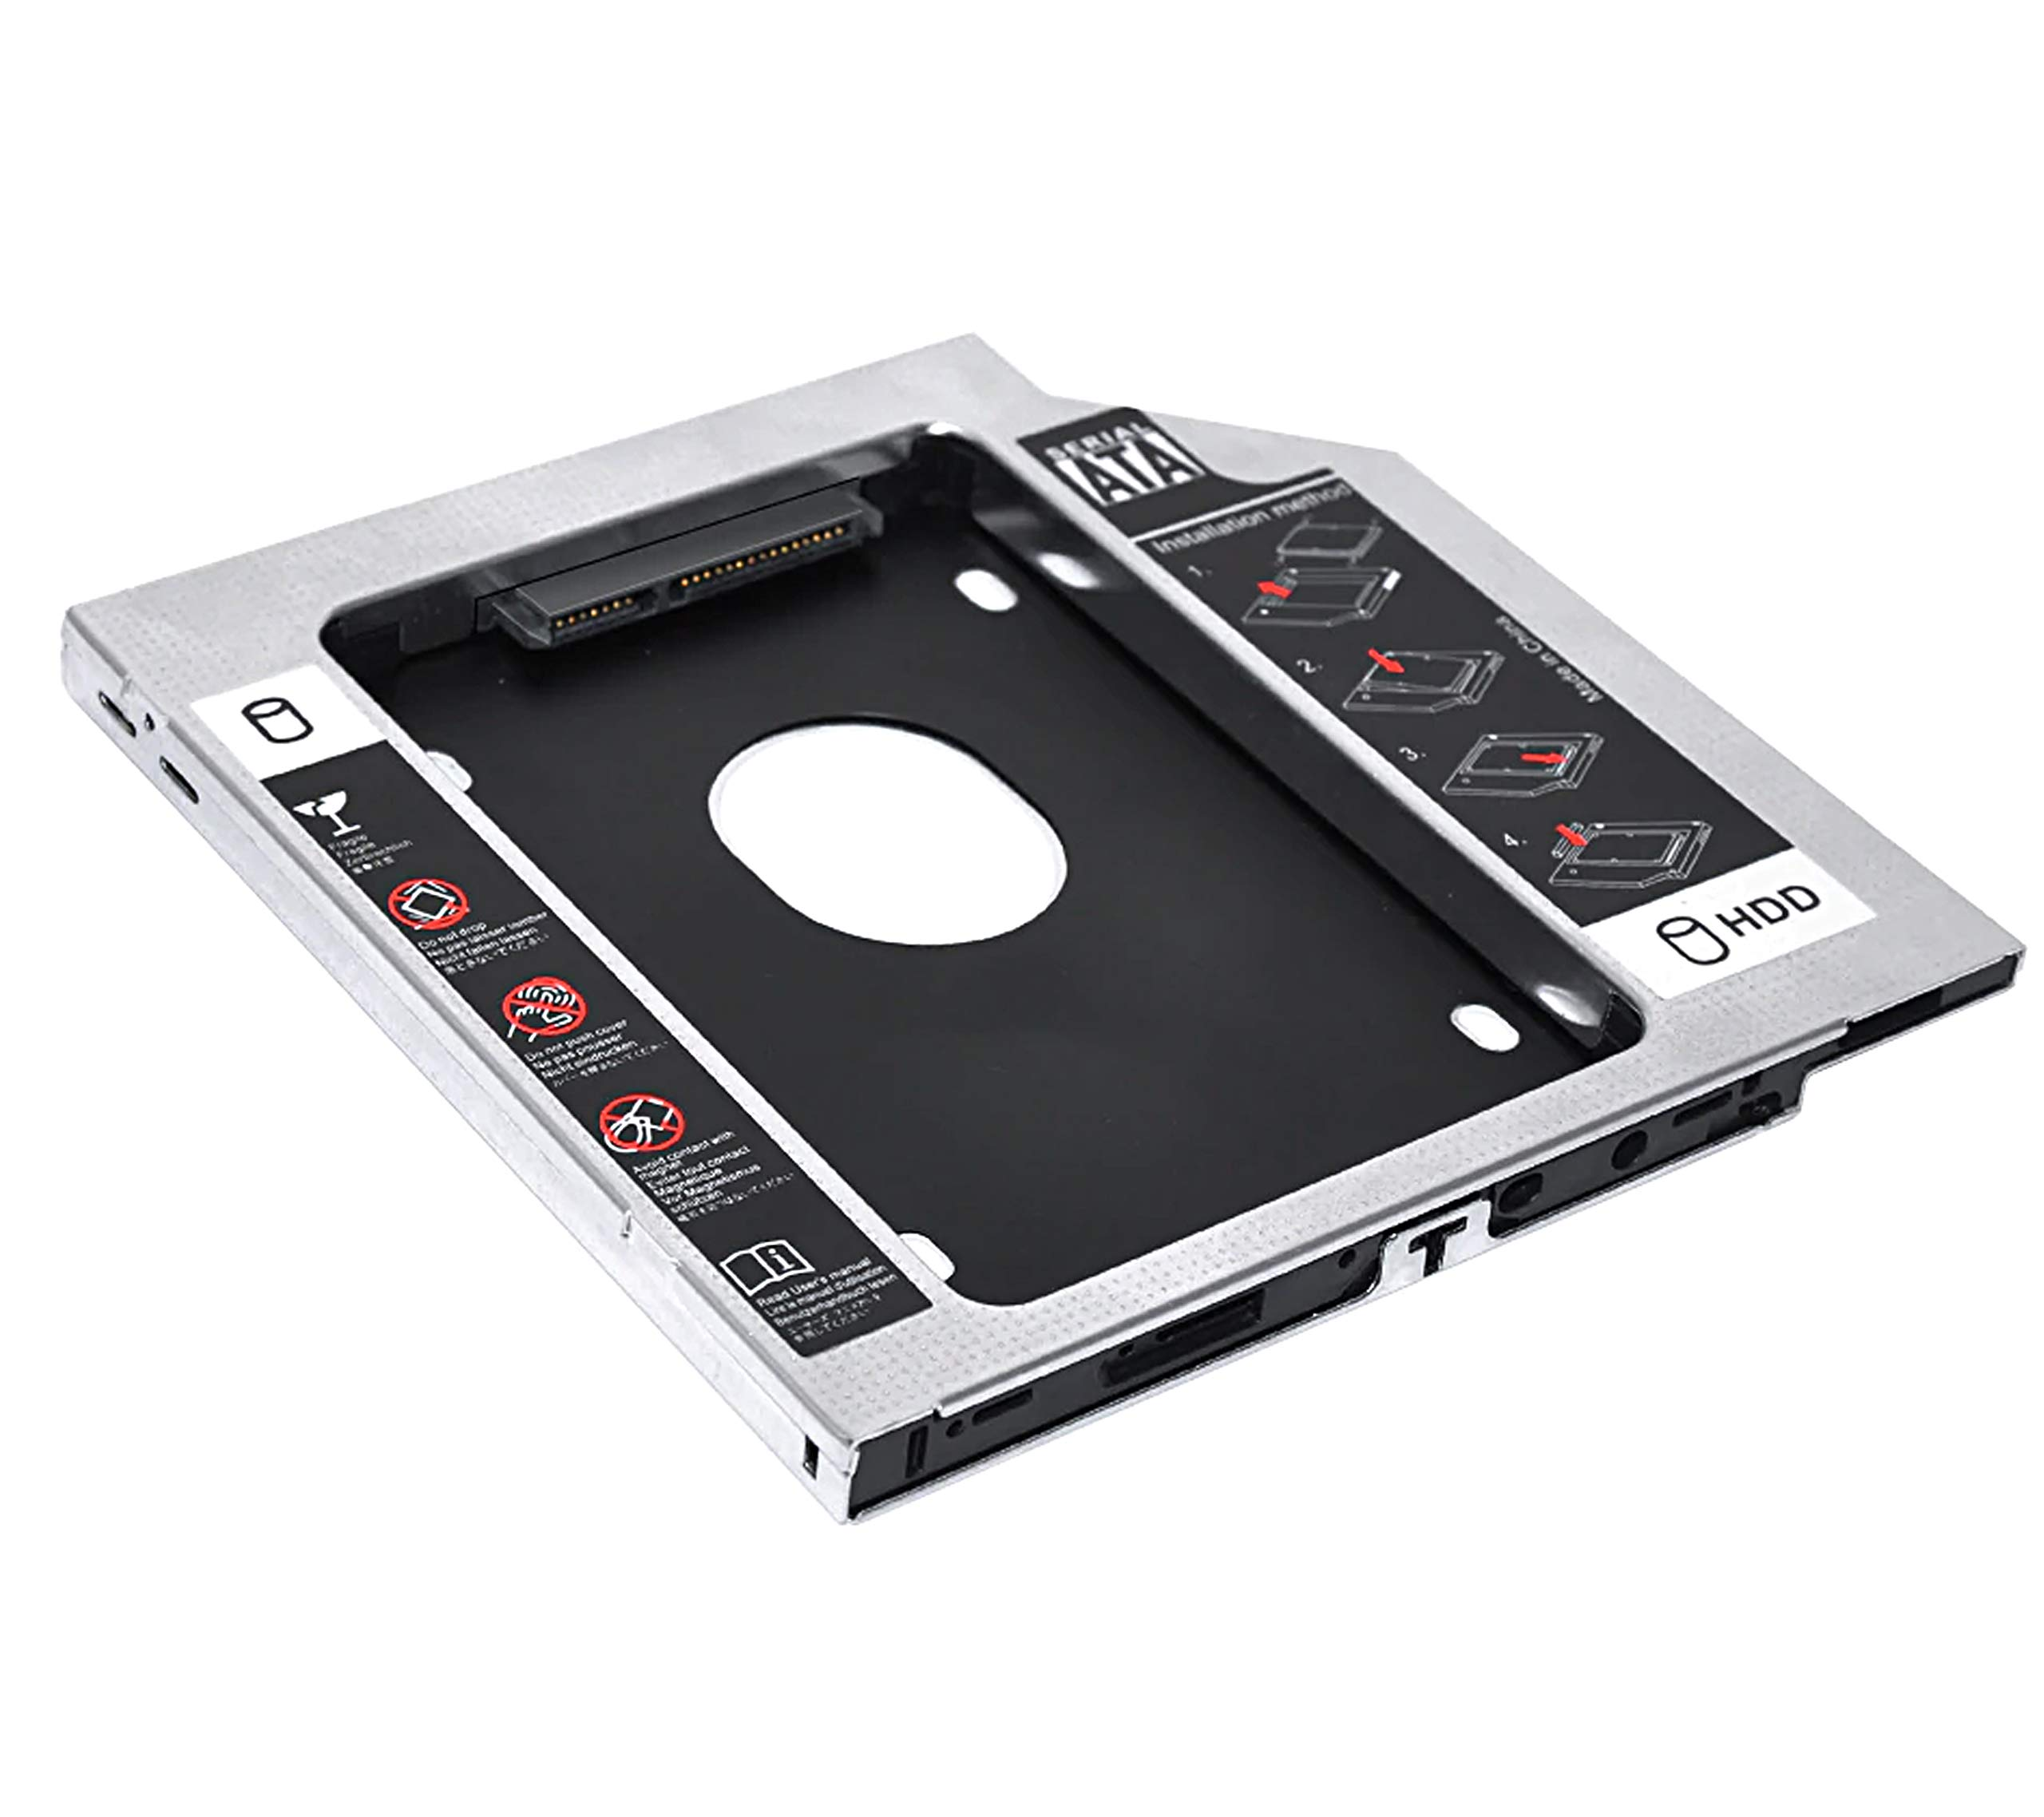 TULMAN SATA 2nd Bay Hard Drive 9.5 mm Universal Caddy with HDD/SDD for CD DVD-ROM Drive Slot product image